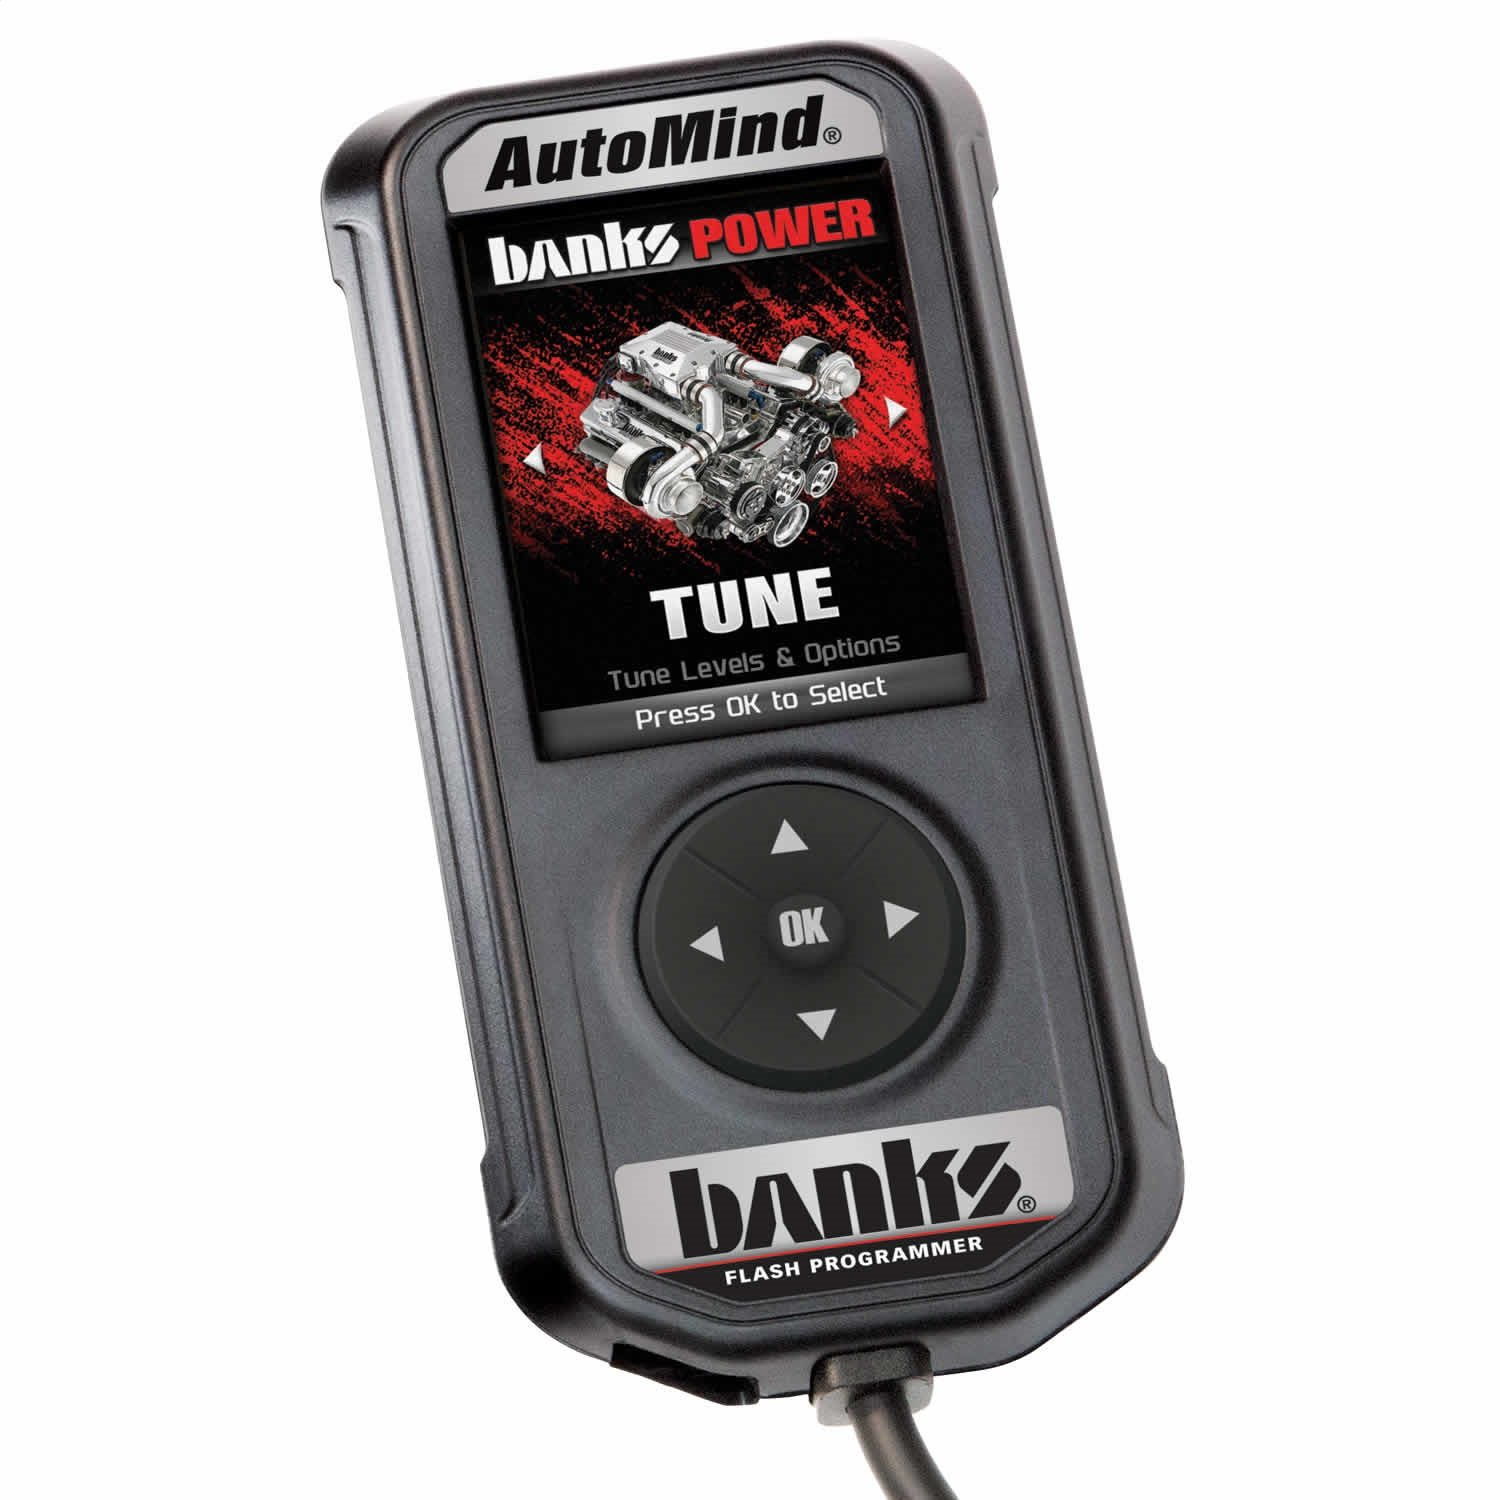 3. Banks 66410 AutoMind 2 Programmer Tuner for 2015 6.7 Powerstroke